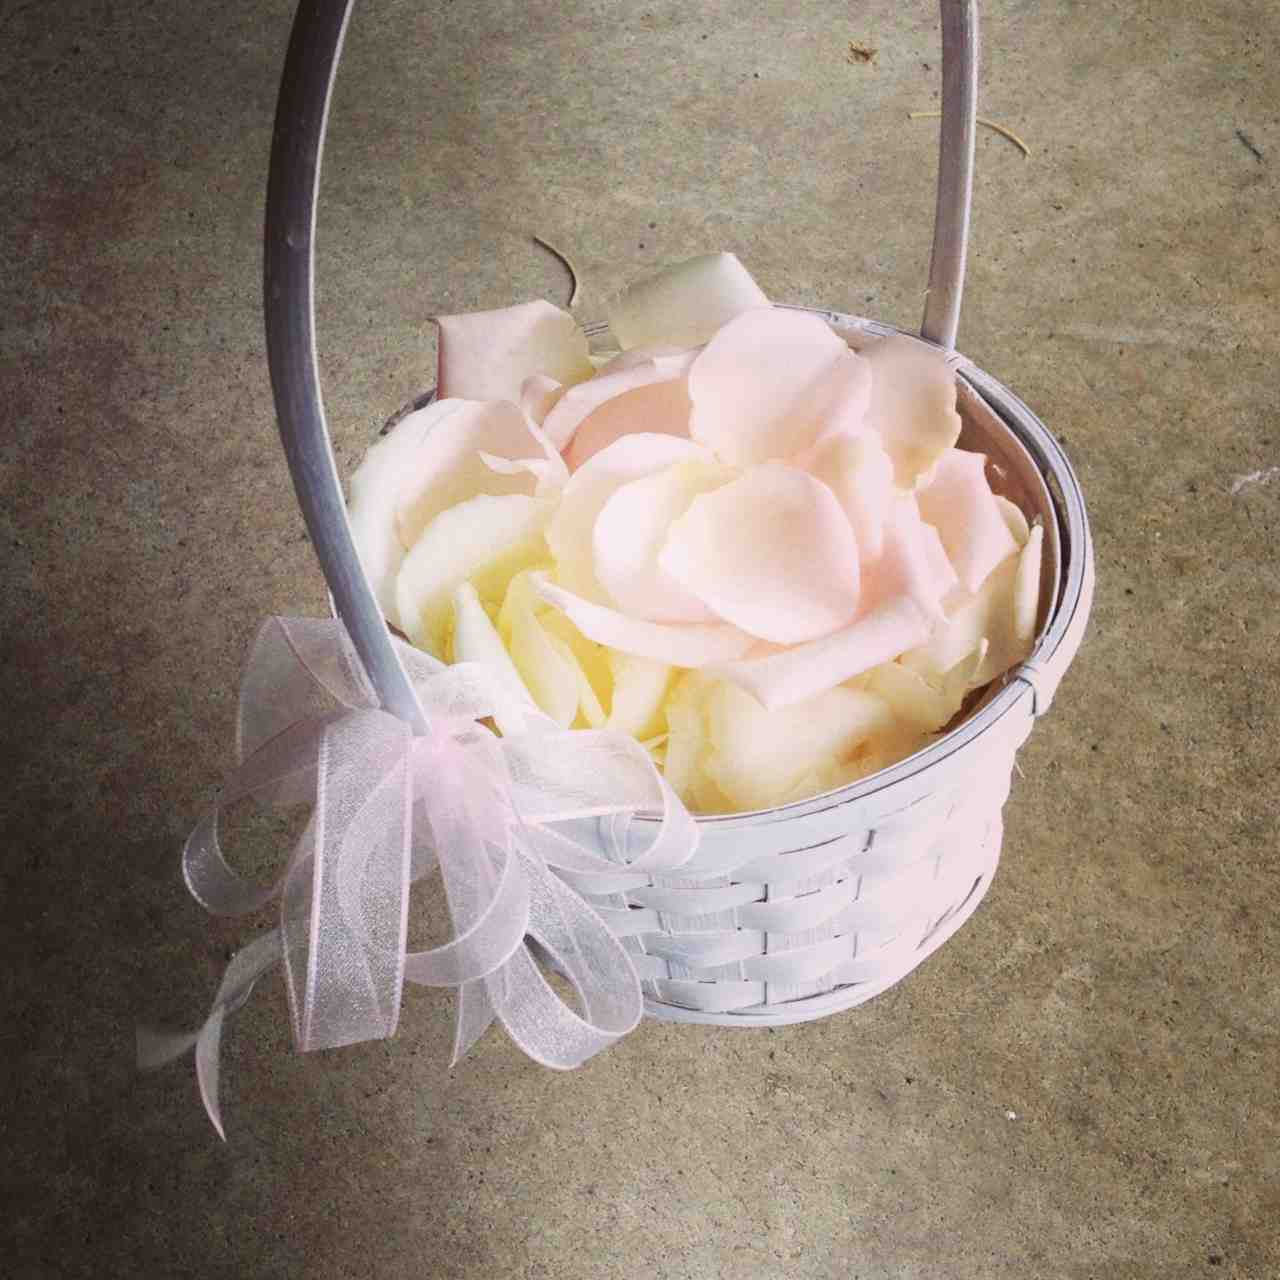 How To Make A Flower Basket For A Flower Girl : Flower girl baskets the beautiful wedding and bridal